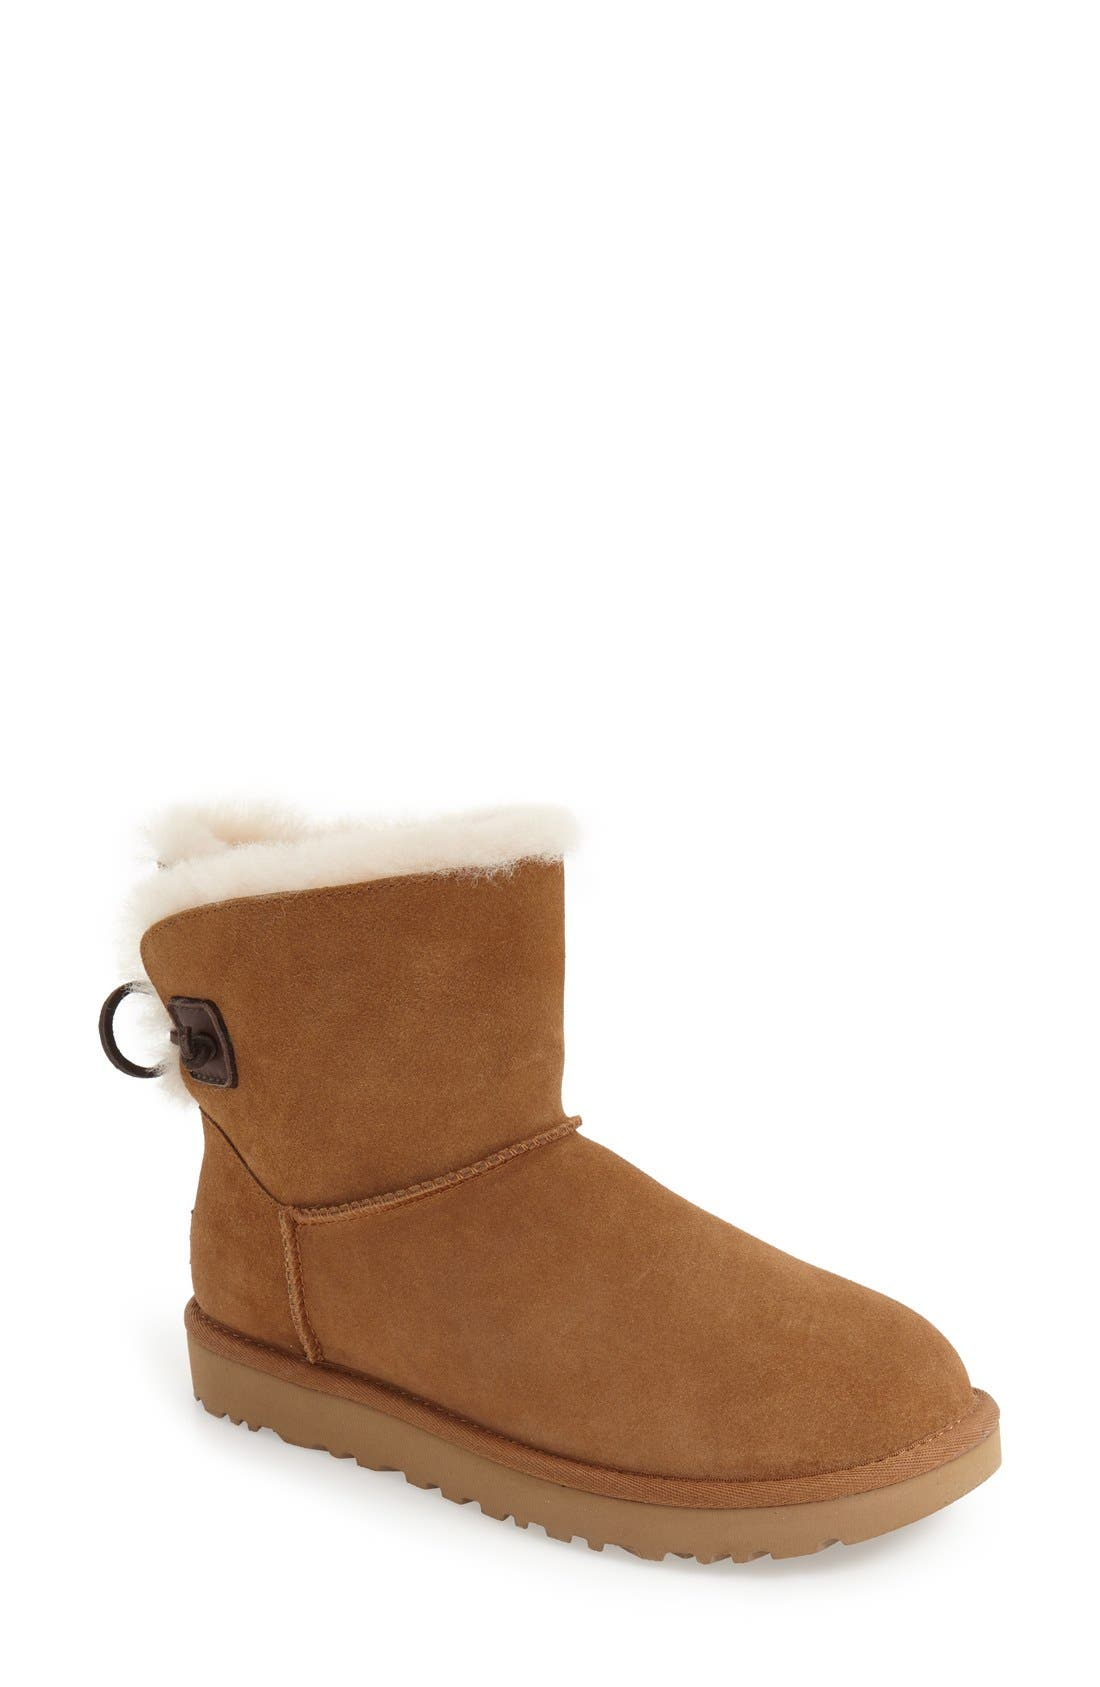 Main Image - UGG® Adoria - Tehuano Short Boot (Women)